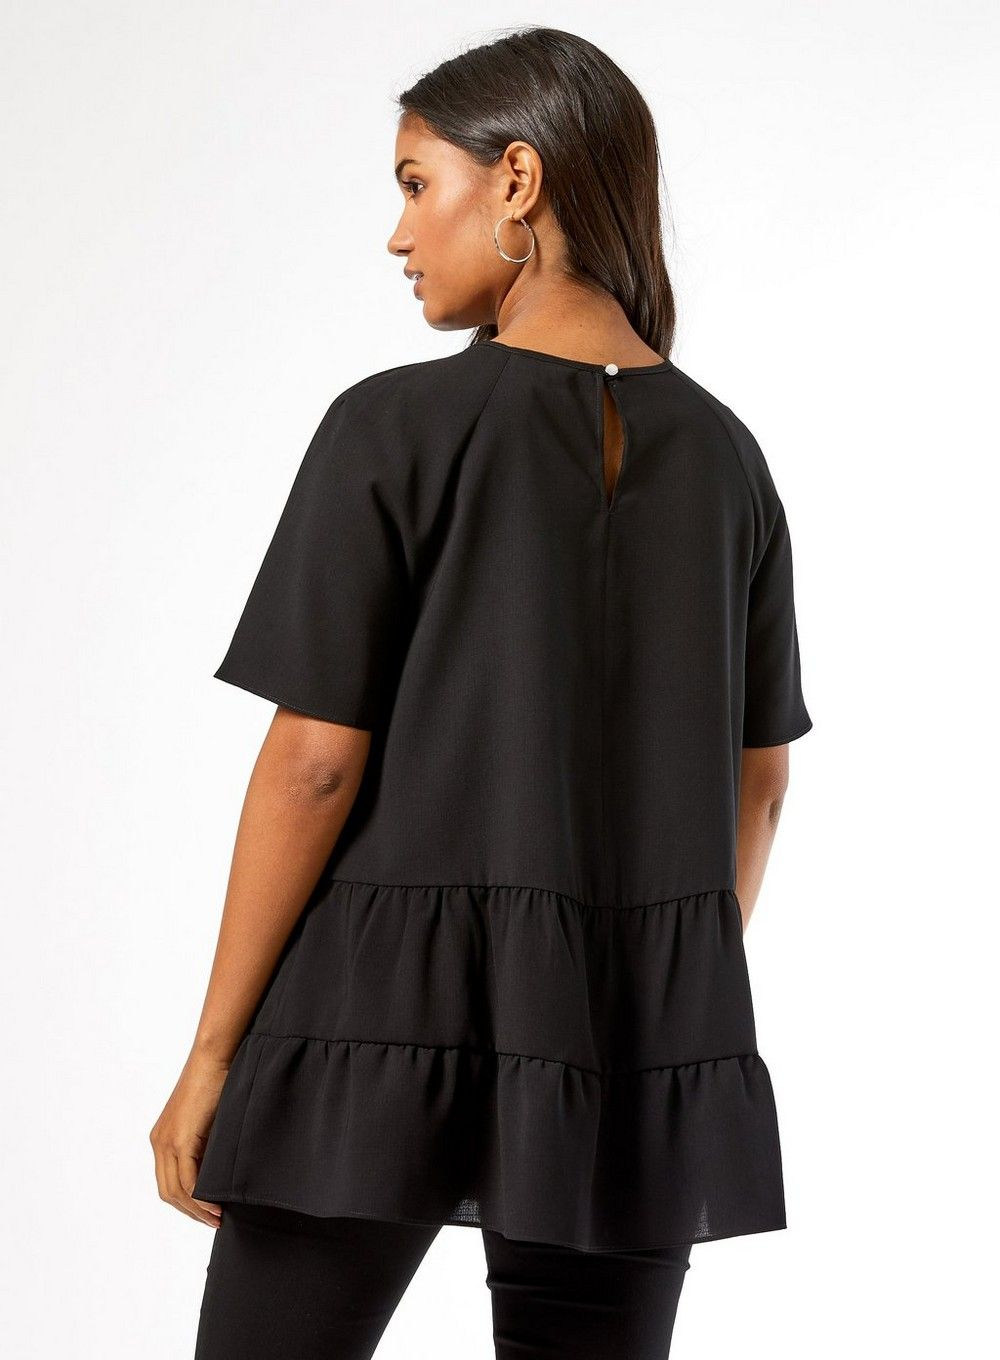 Dorothy Perkins Womens Maternity Black Tiered Frill Top Blouse Short Sleeve